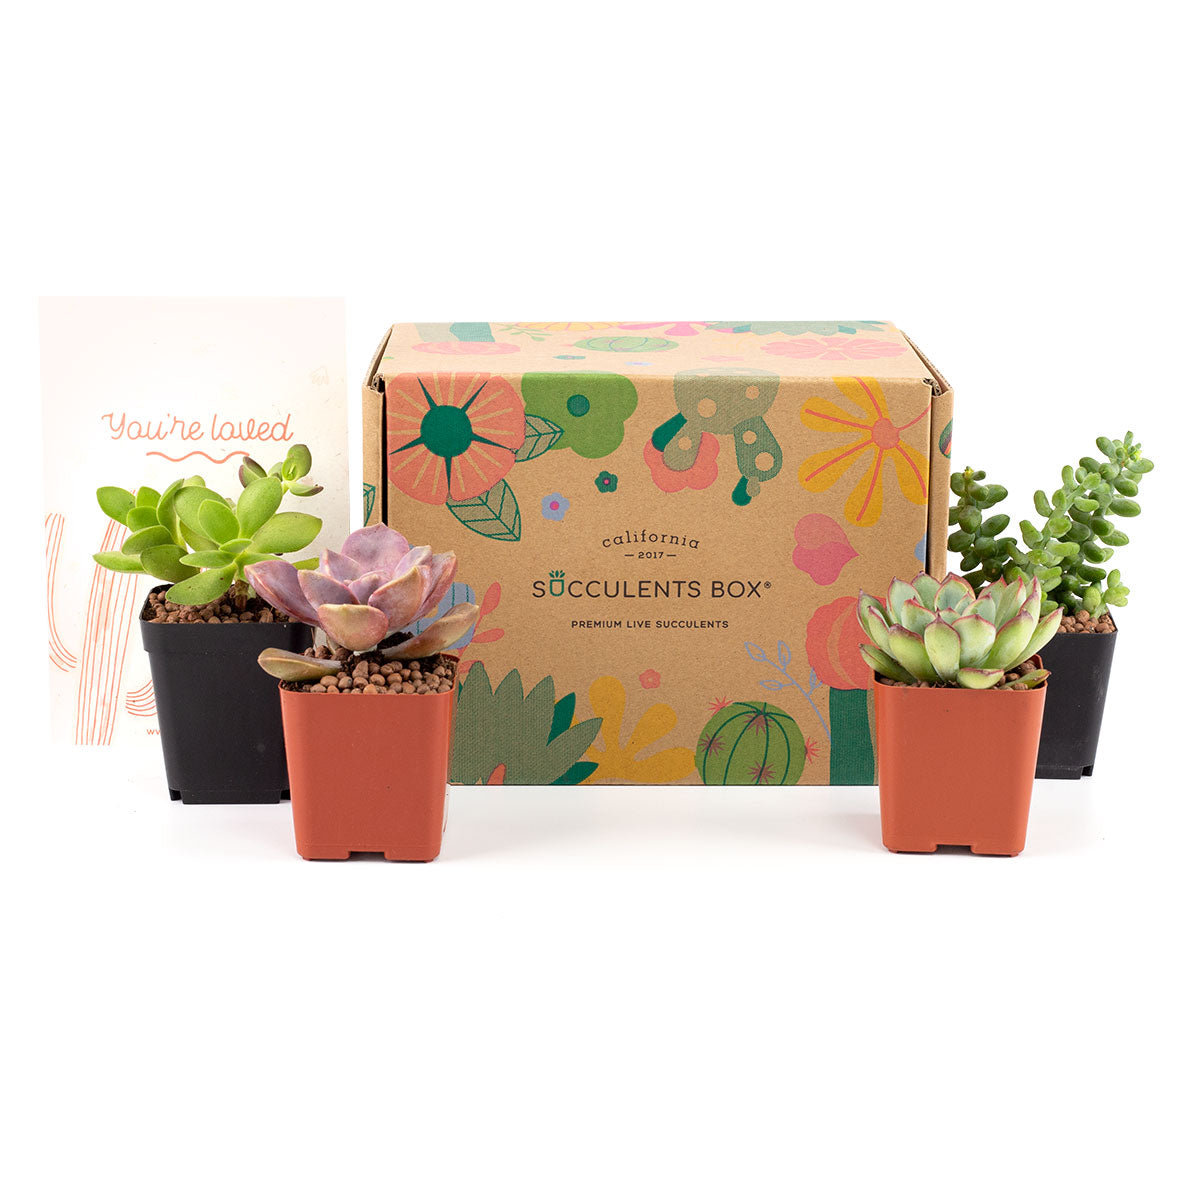 Succulent Subcription Boxes for sale, Succulents for Sale, Types of Succulents, Succulents Shop in California, Succulents and Cactus Plants, Cactus Box, Subscription Box with Care Instruction, Succulent Subscription Gift Box Monthly